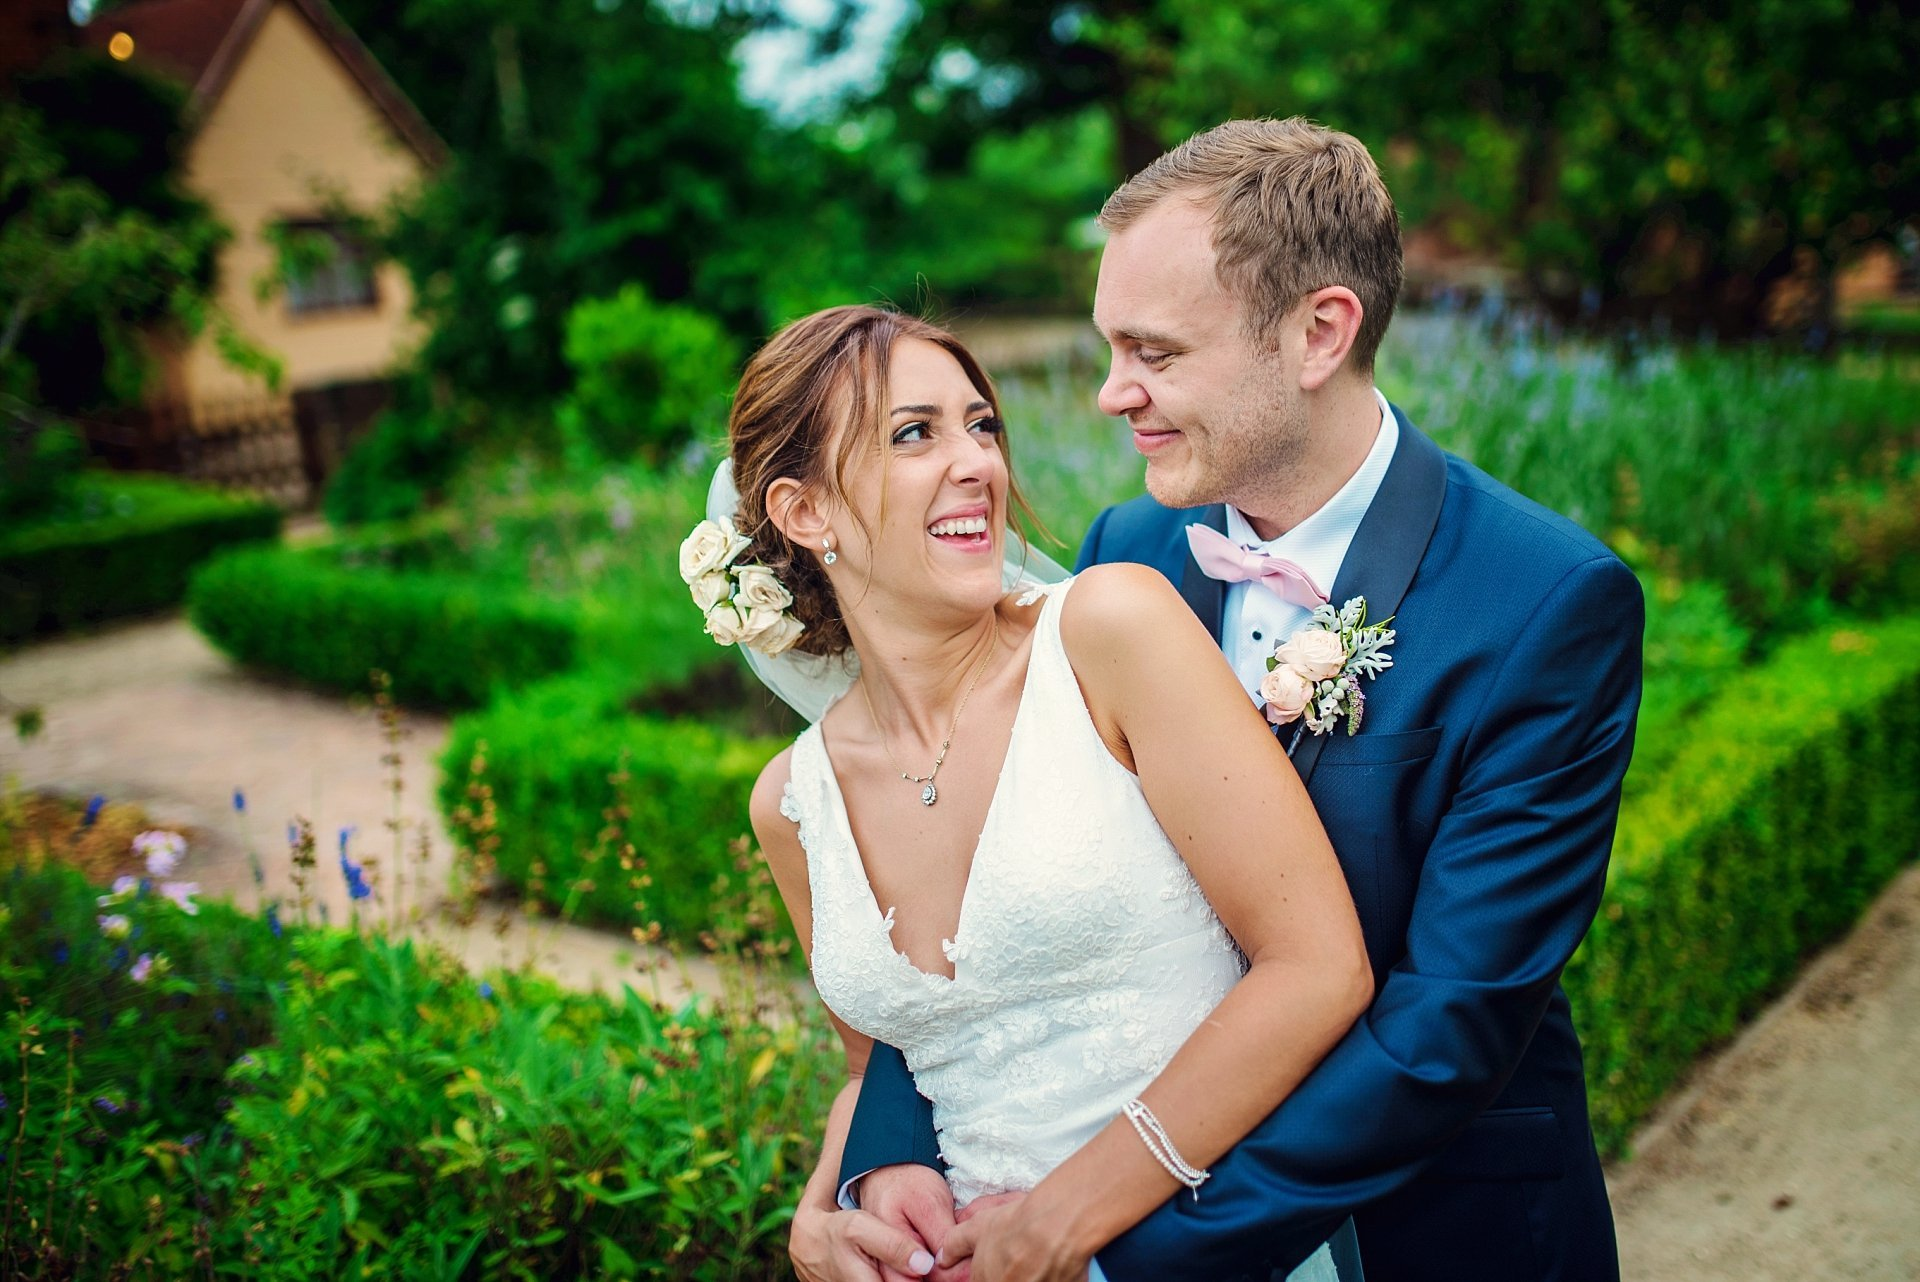 ufton court wedding photographer